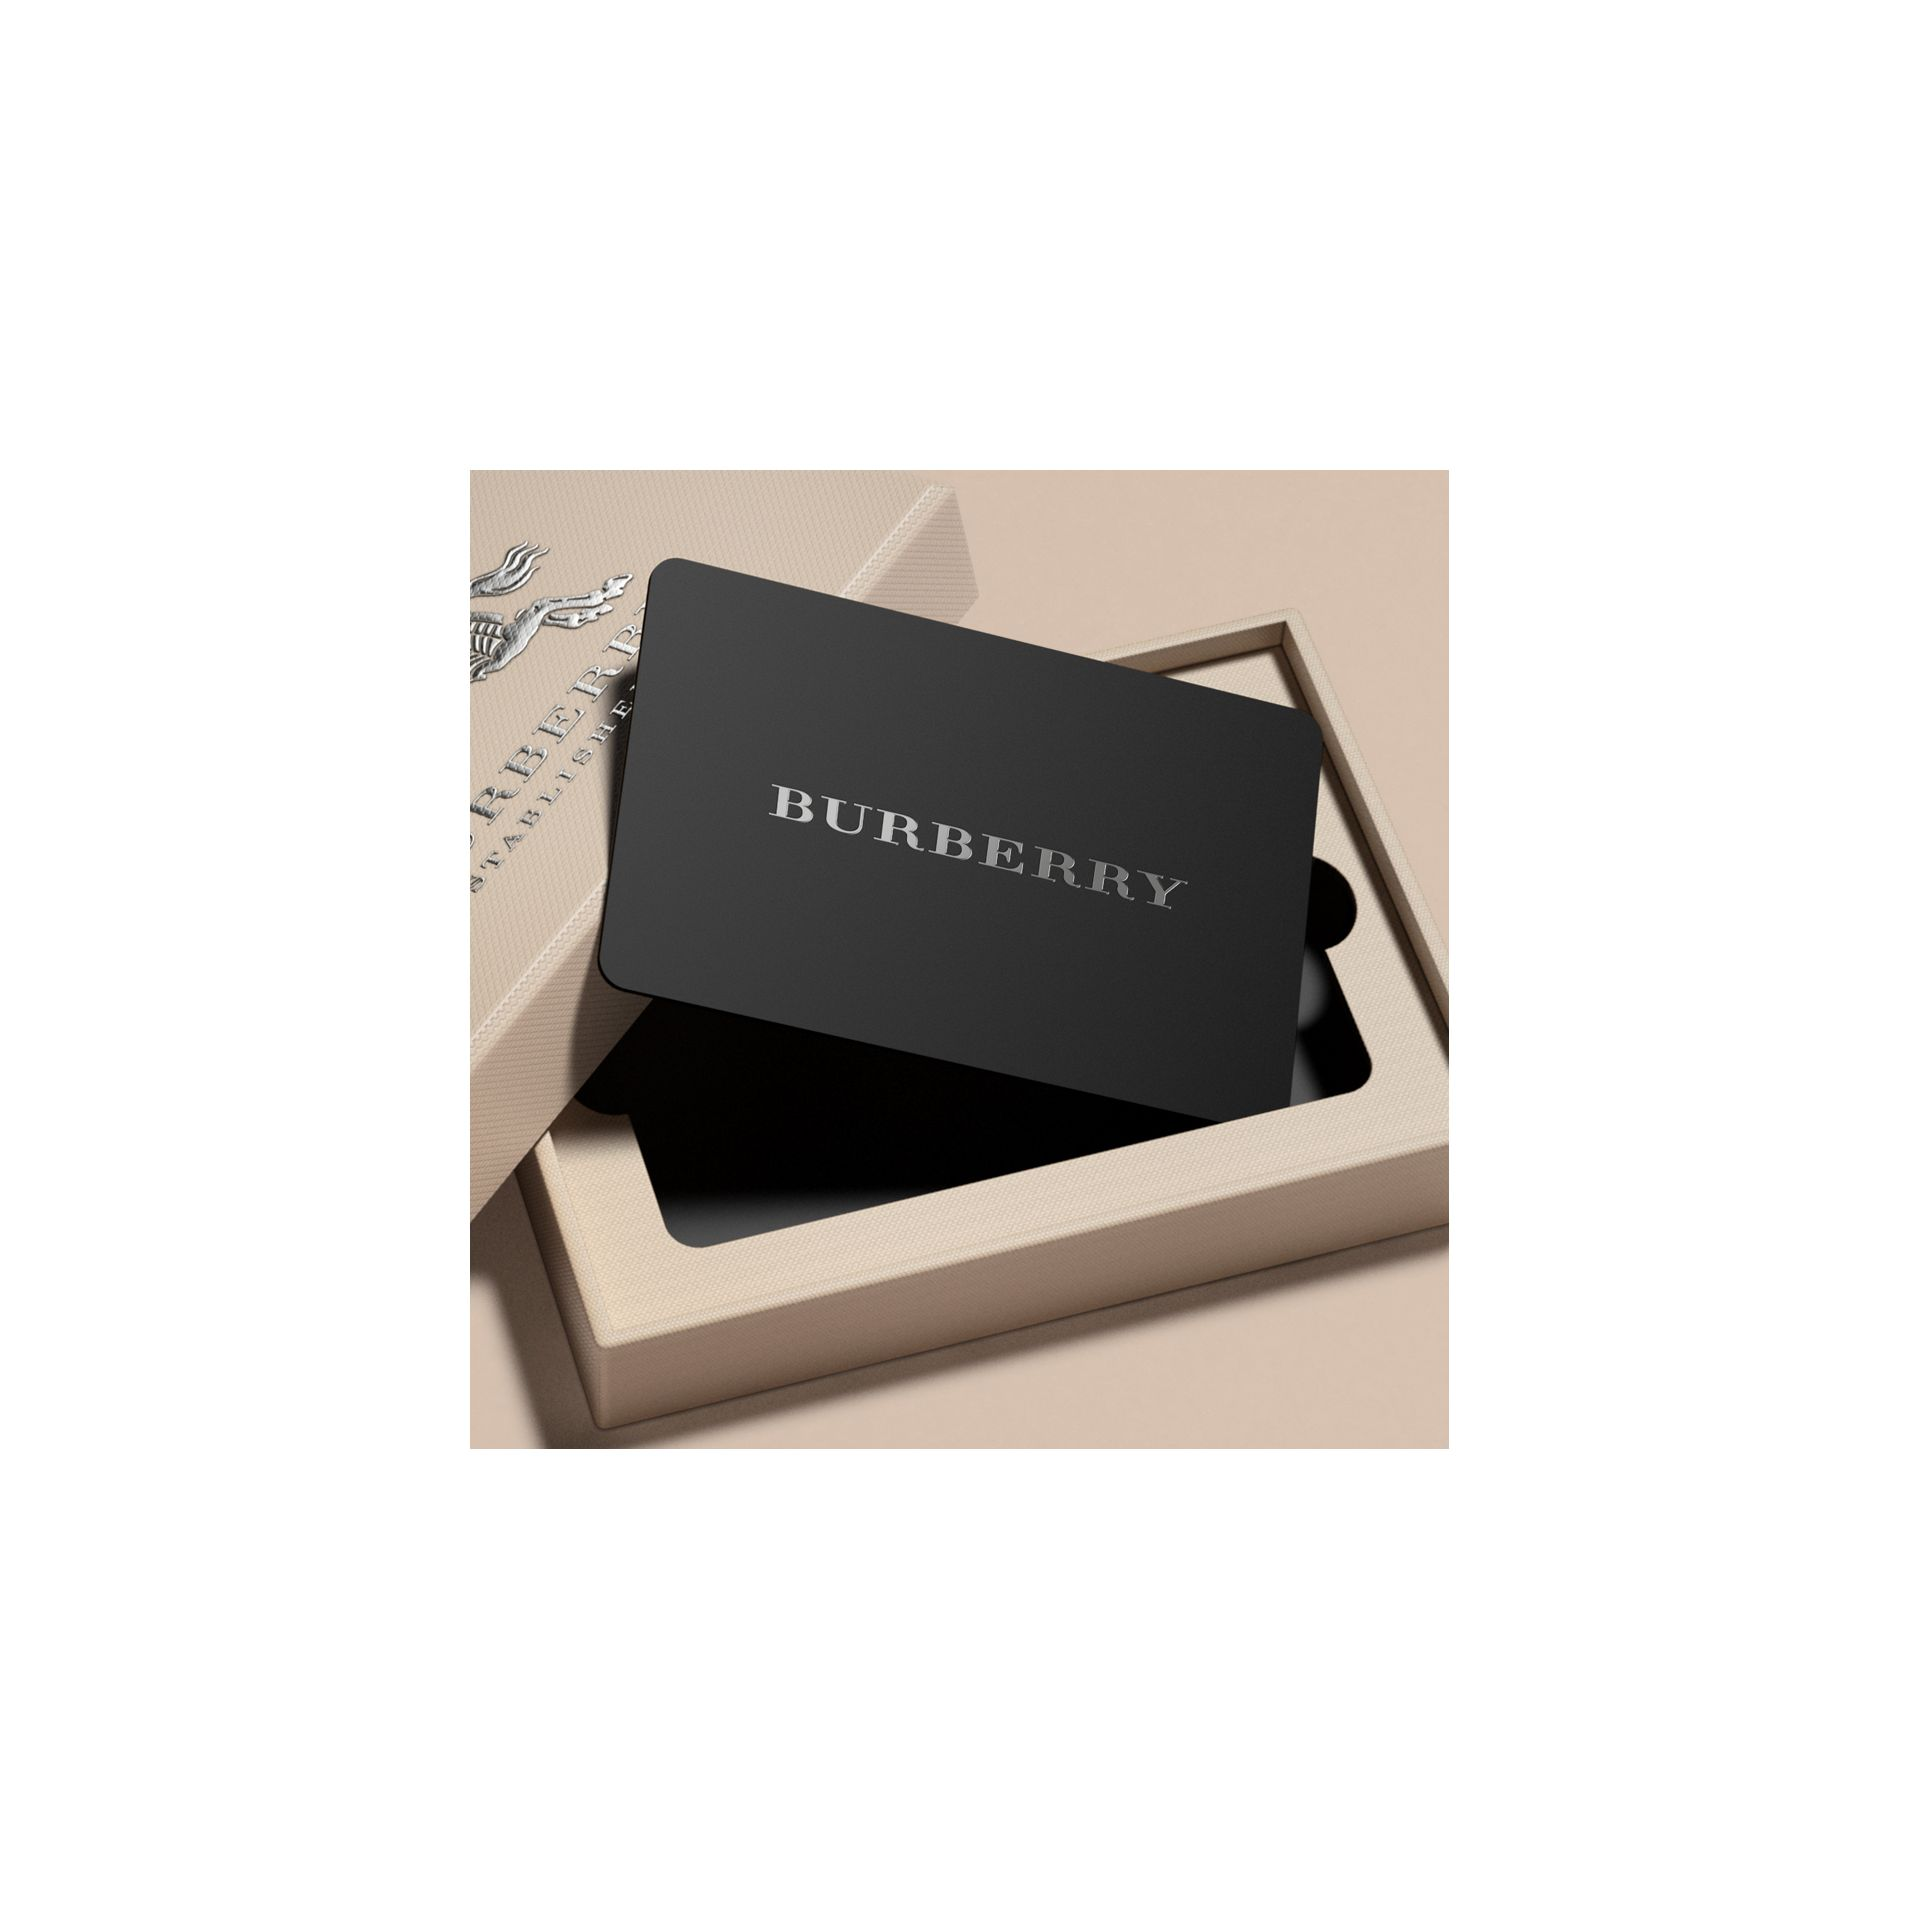 Burberry Gift Card - gallery image 2